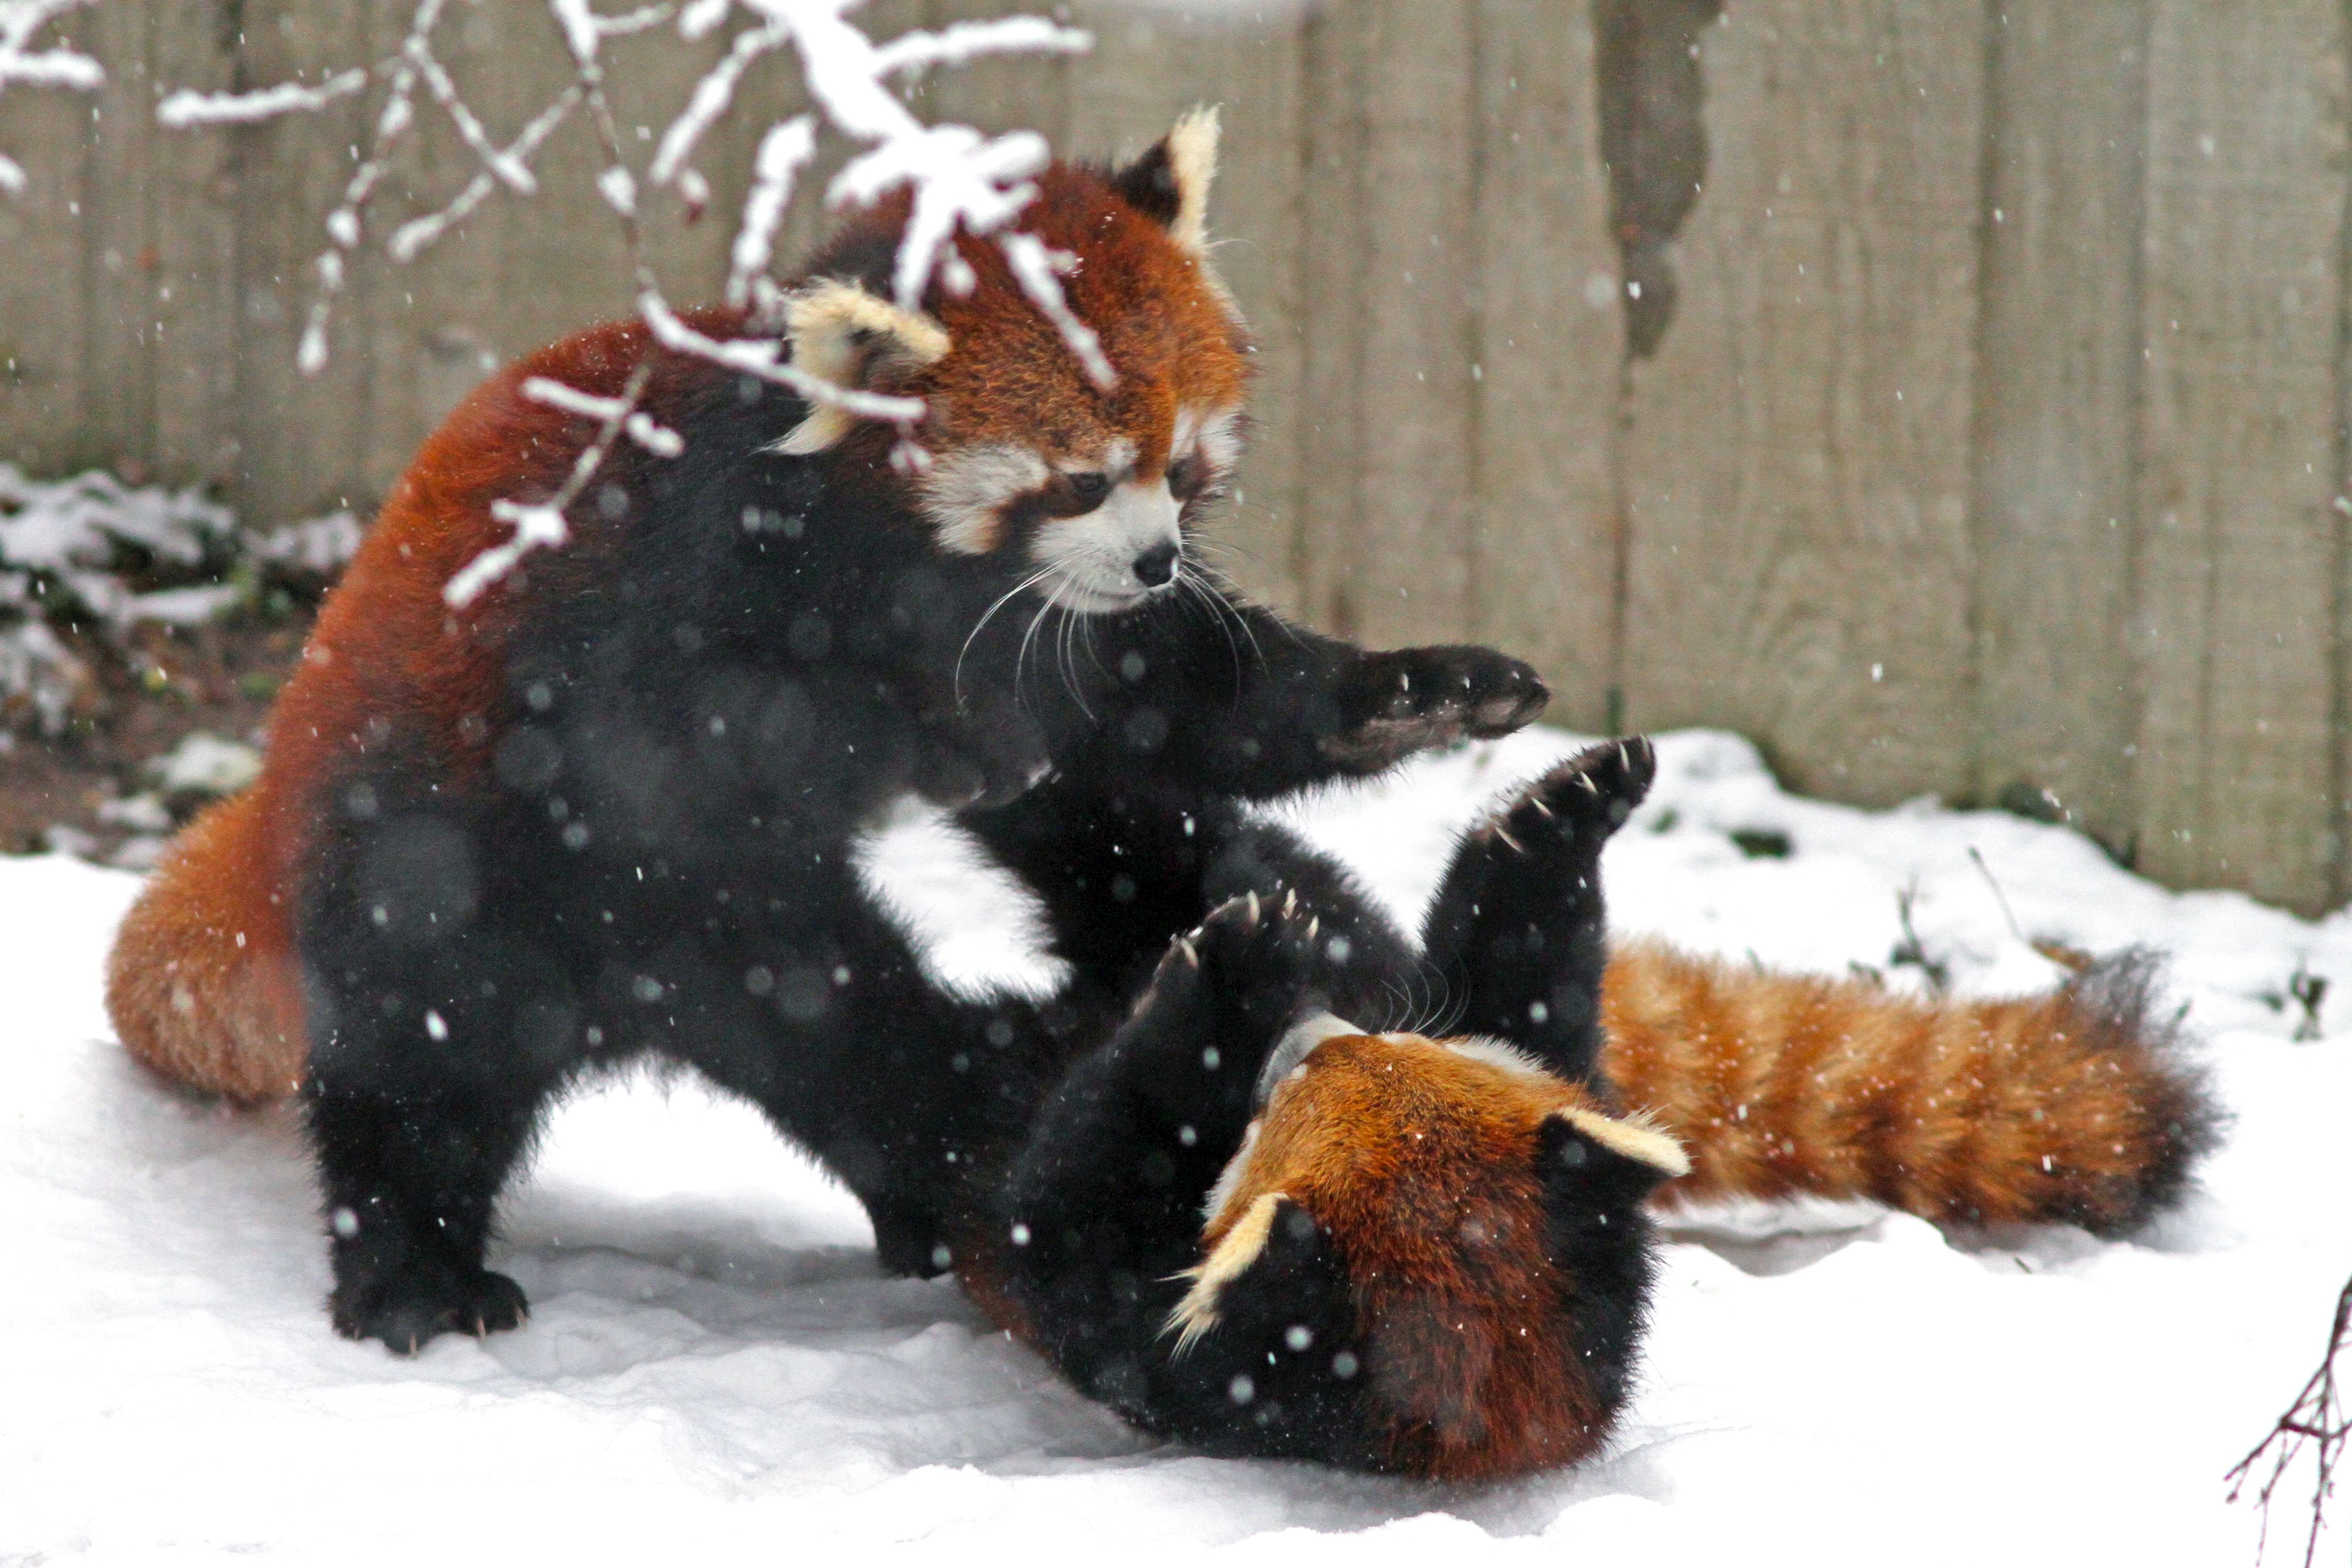 The Verge Review of Animals: the red panda | The Verge